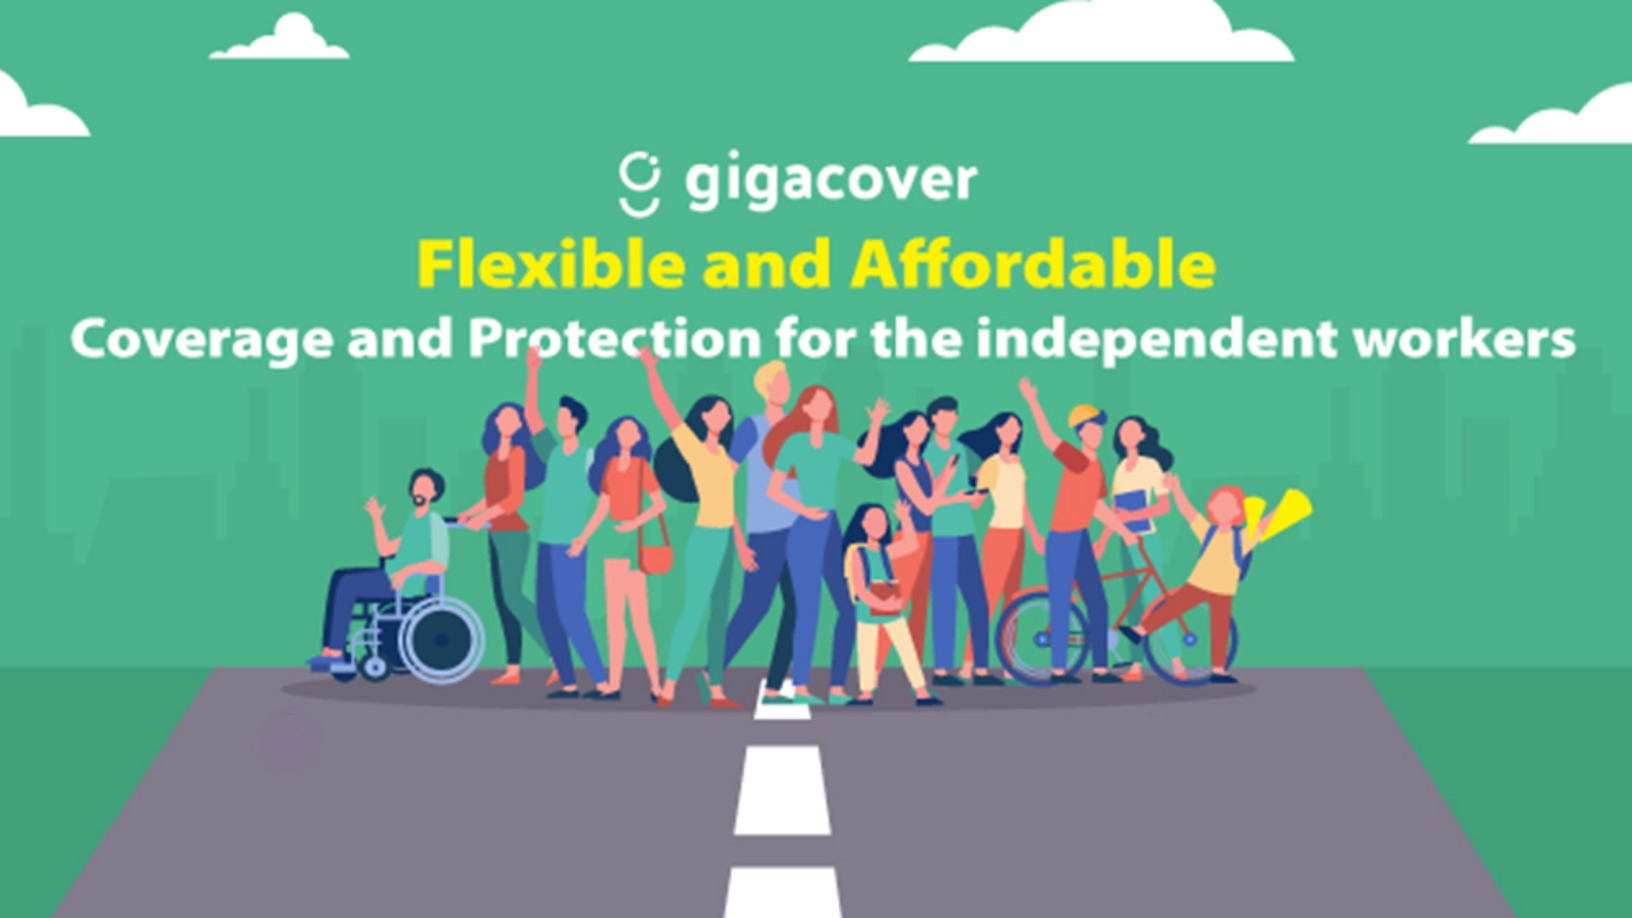 Gigacover: Providing a financial safety net for gig workers